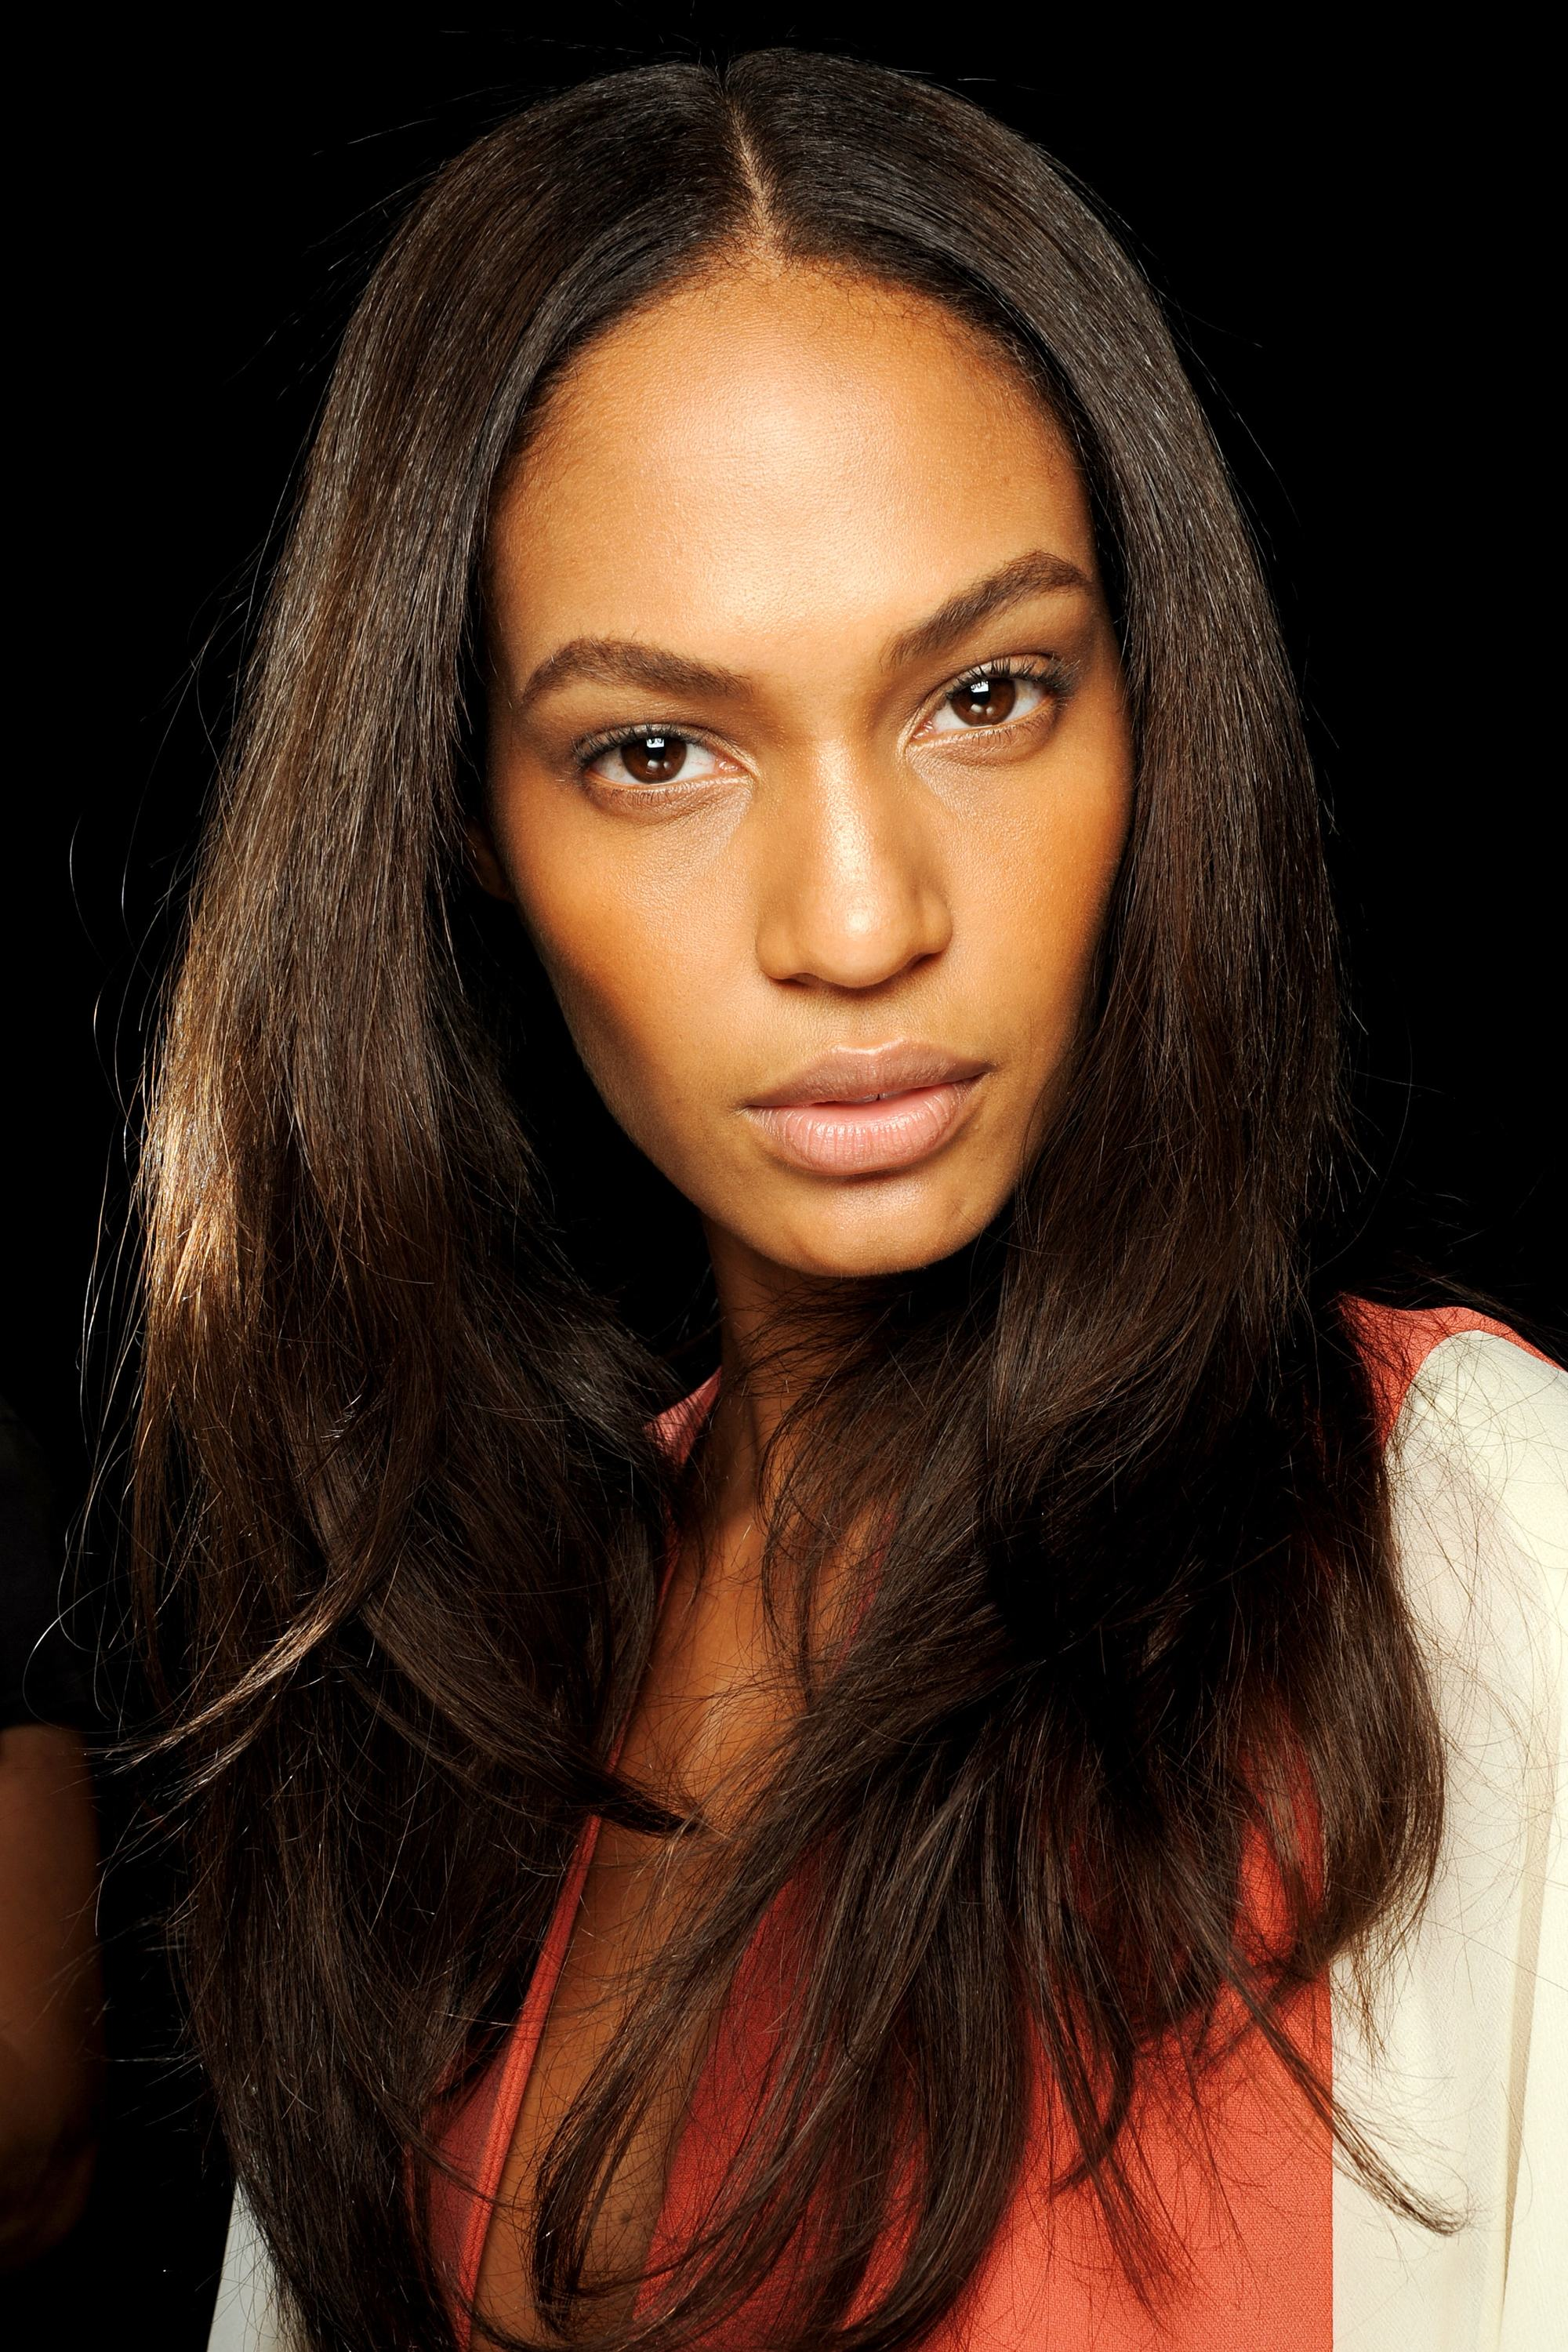 Model joan smalls with thick hair